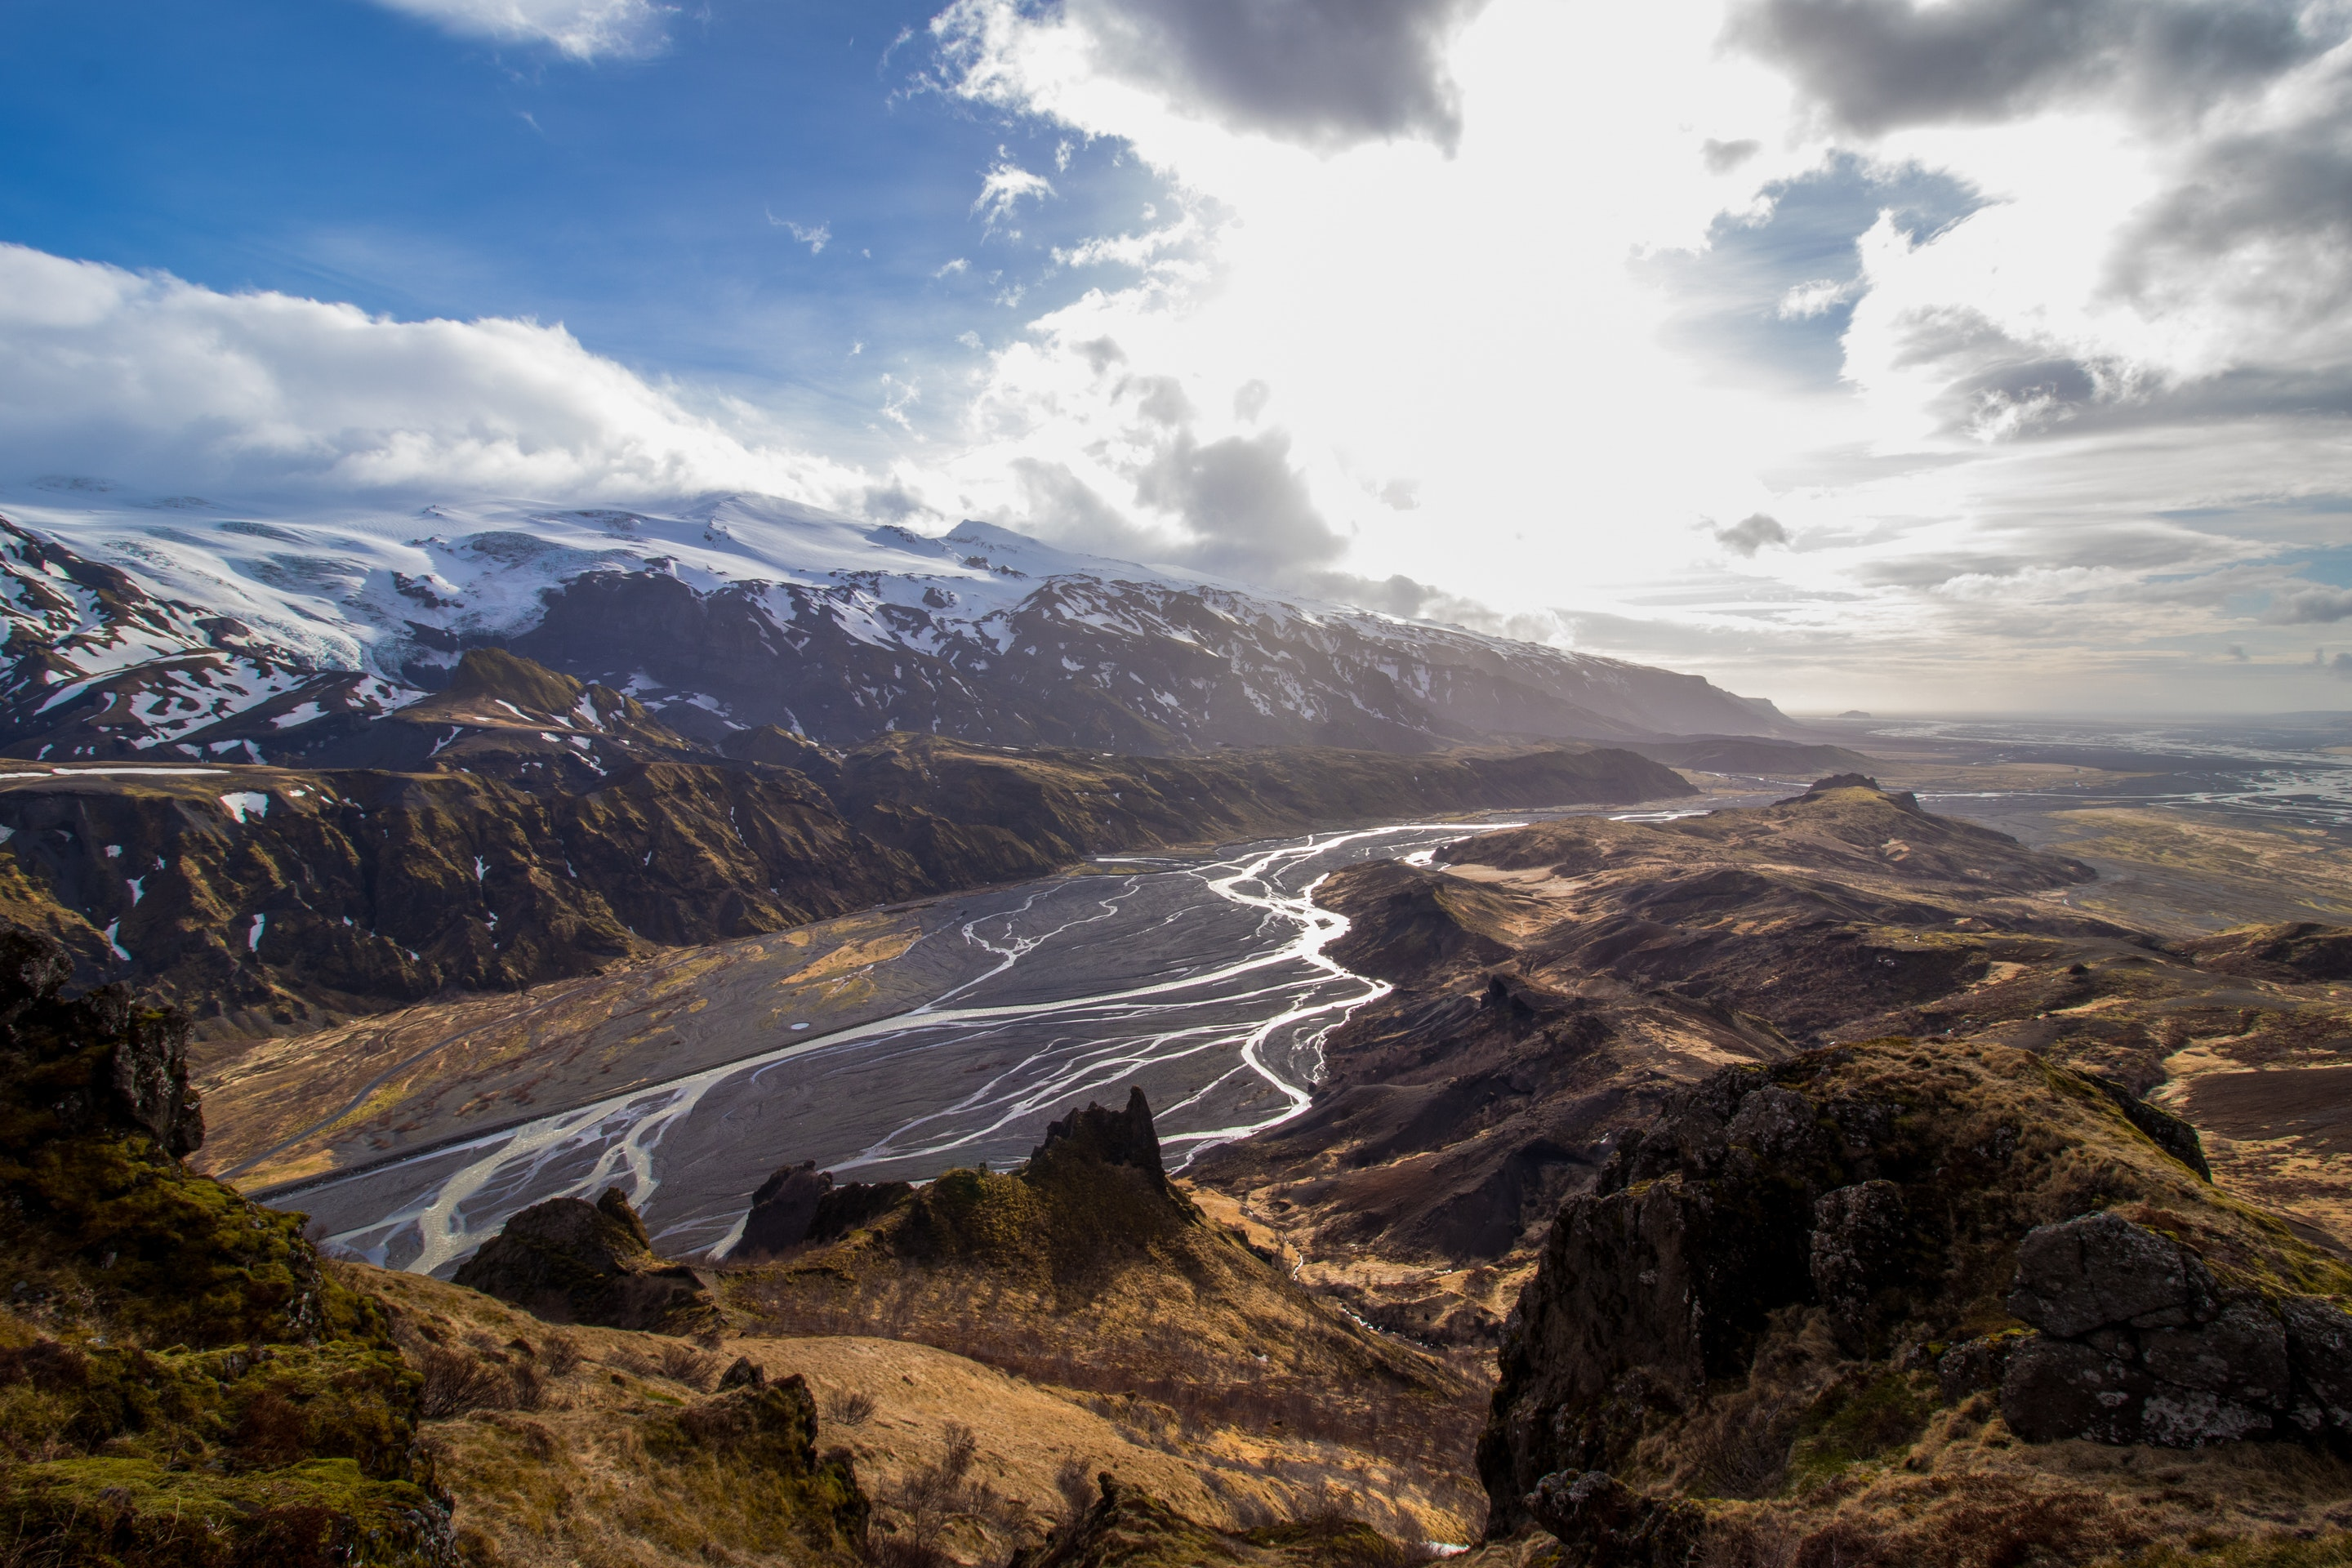 valley-iceland-nature-1856506